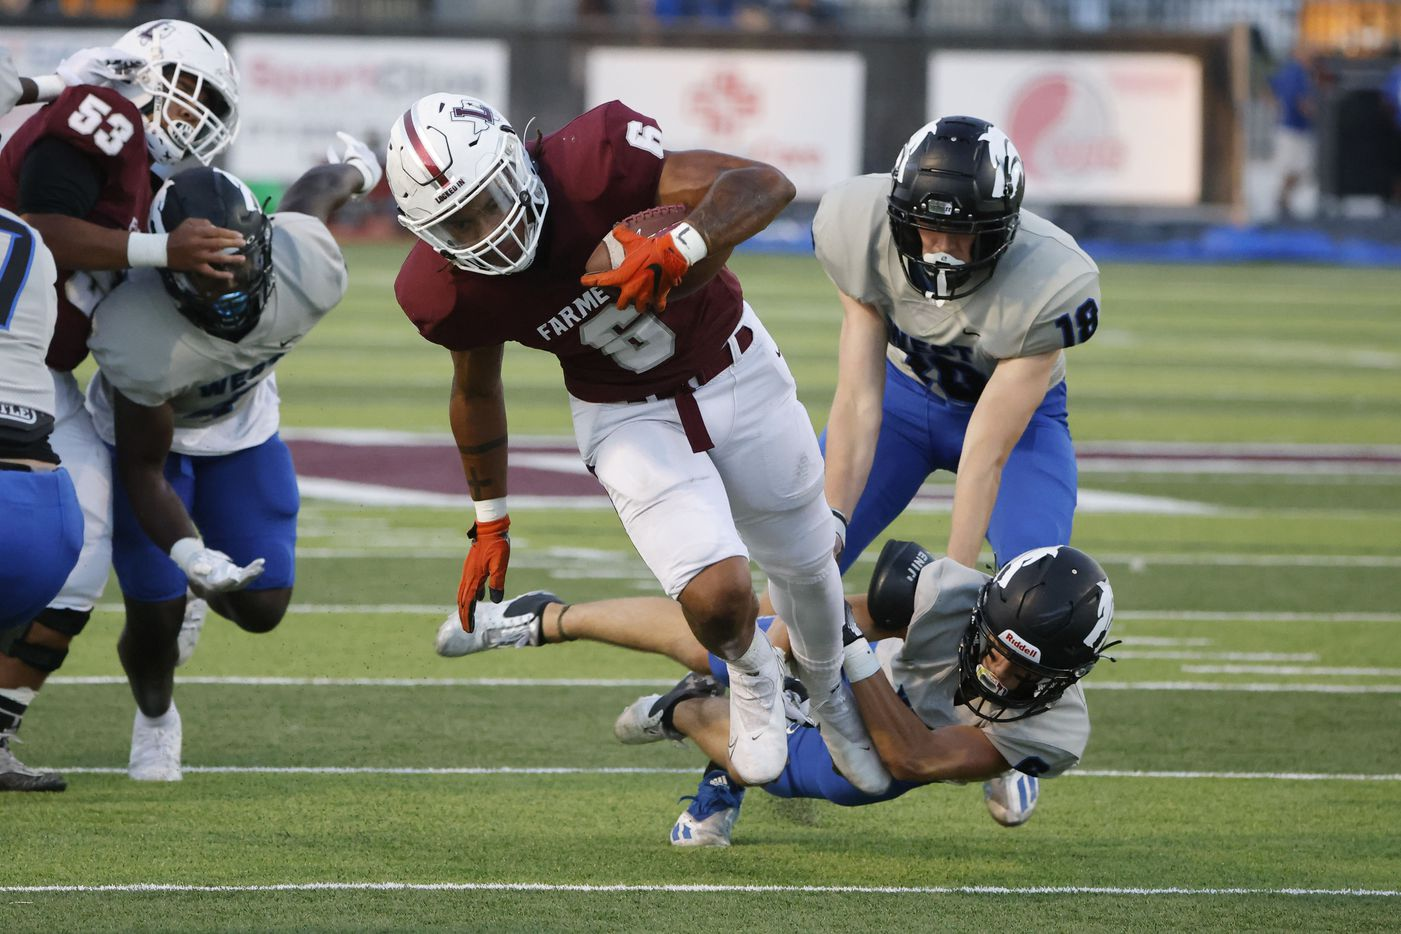 Lewisville running back Damien Martinez (6) runs out of an attempted tackle by Plano Wesd defender Coby Stewart during the first half of a high school football game in Lewisville, Texas on Friday, Sept. 24, 2021. (Michael Ainsworth/Special Contributor)